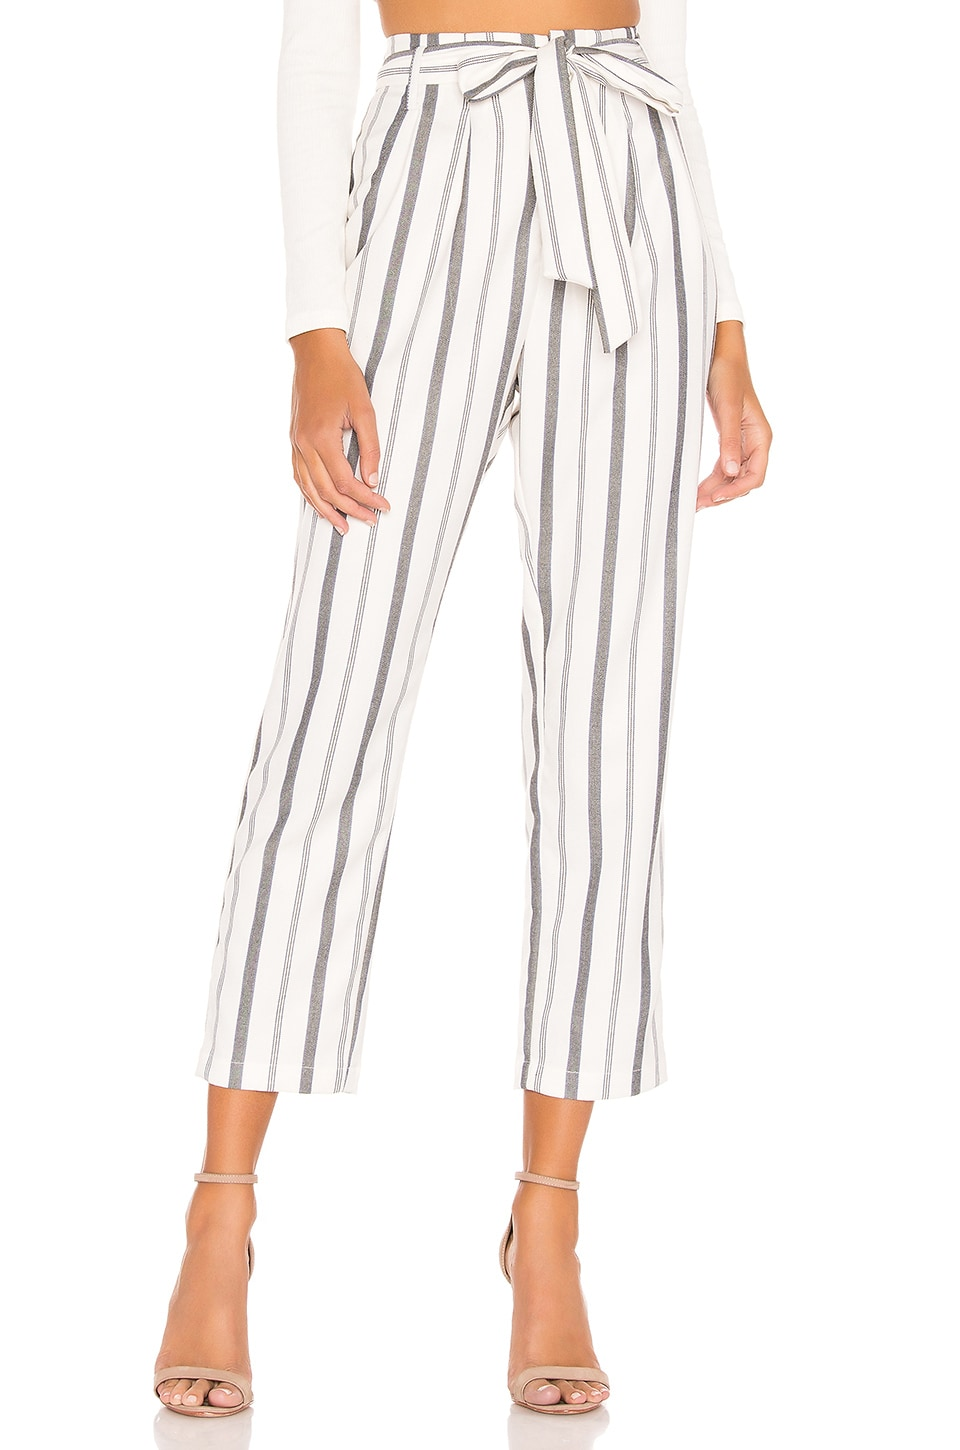 L'Academie Brenda Pants in Blue Stripe